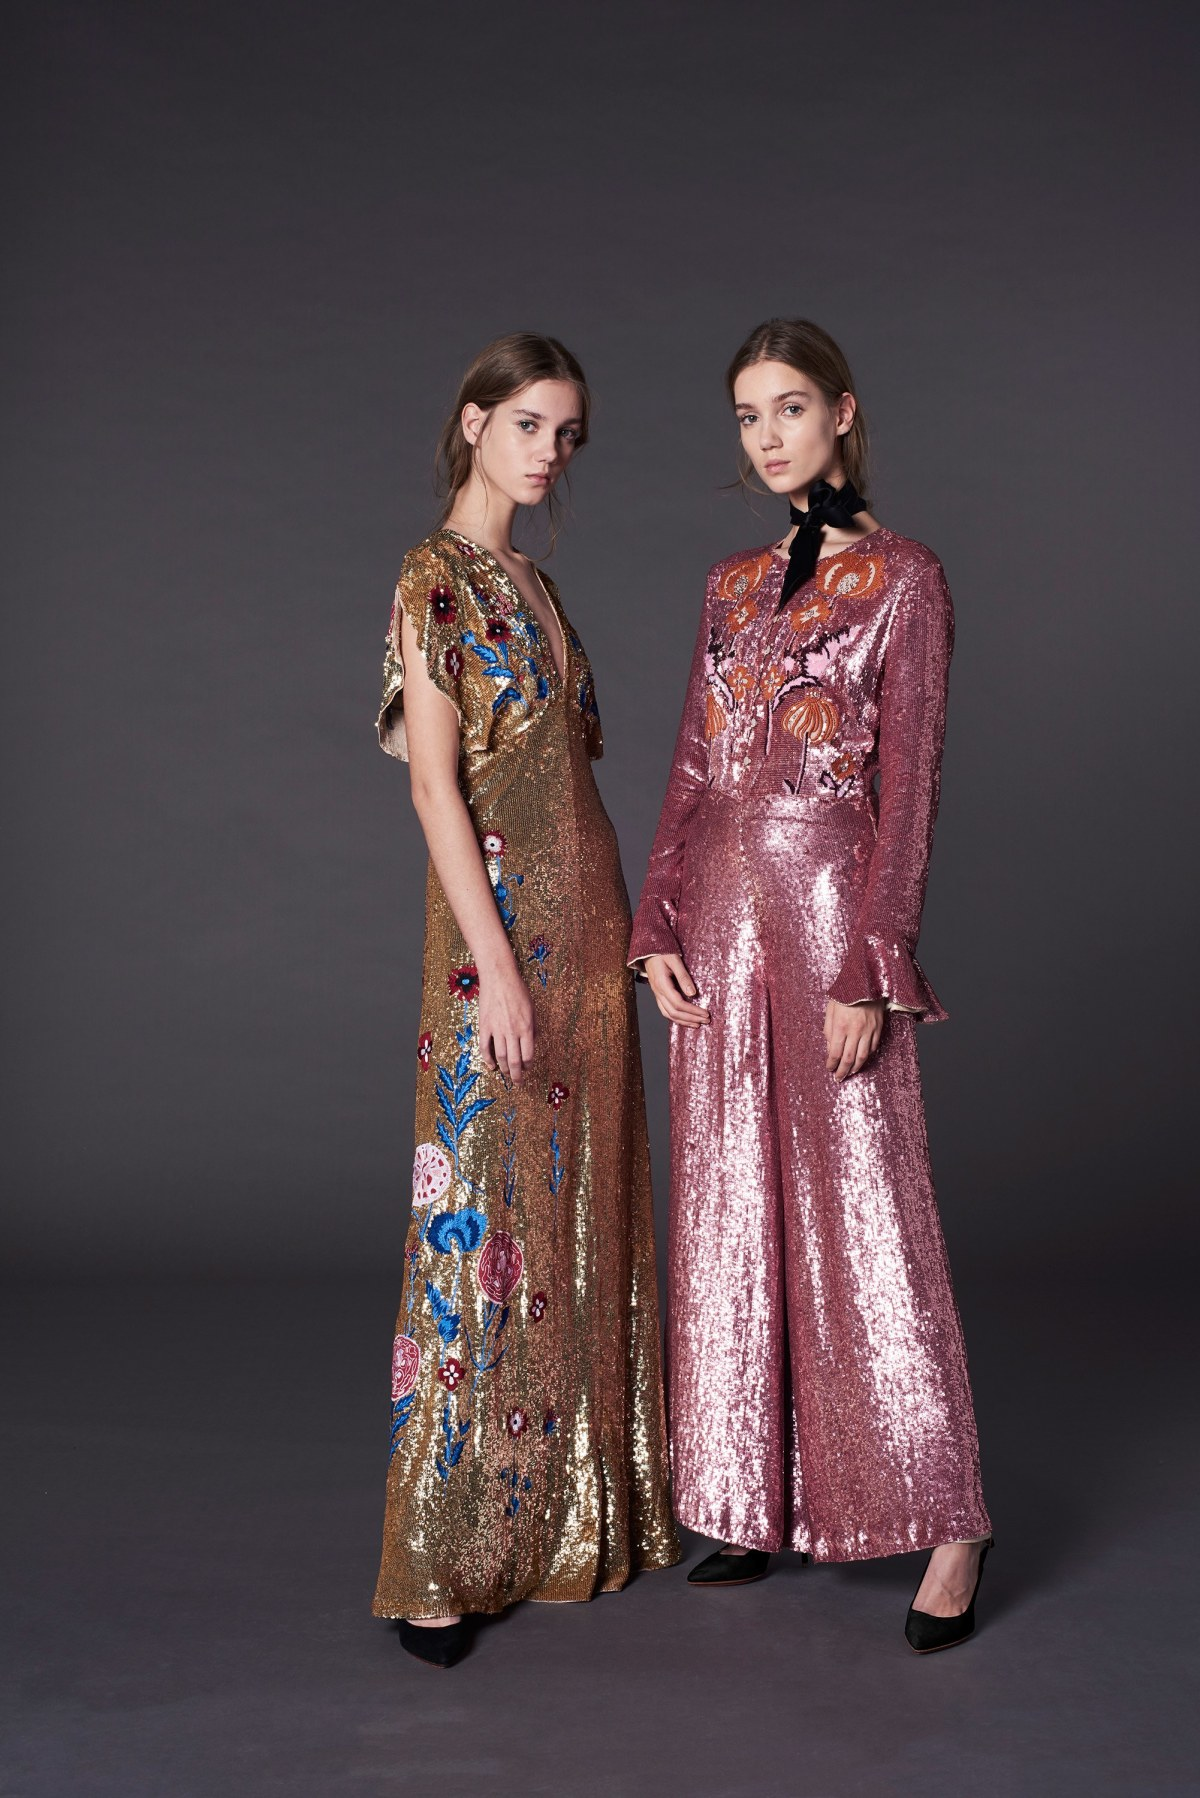 temperley-london-pre-fall-2017-fashion-show-the-impression-27